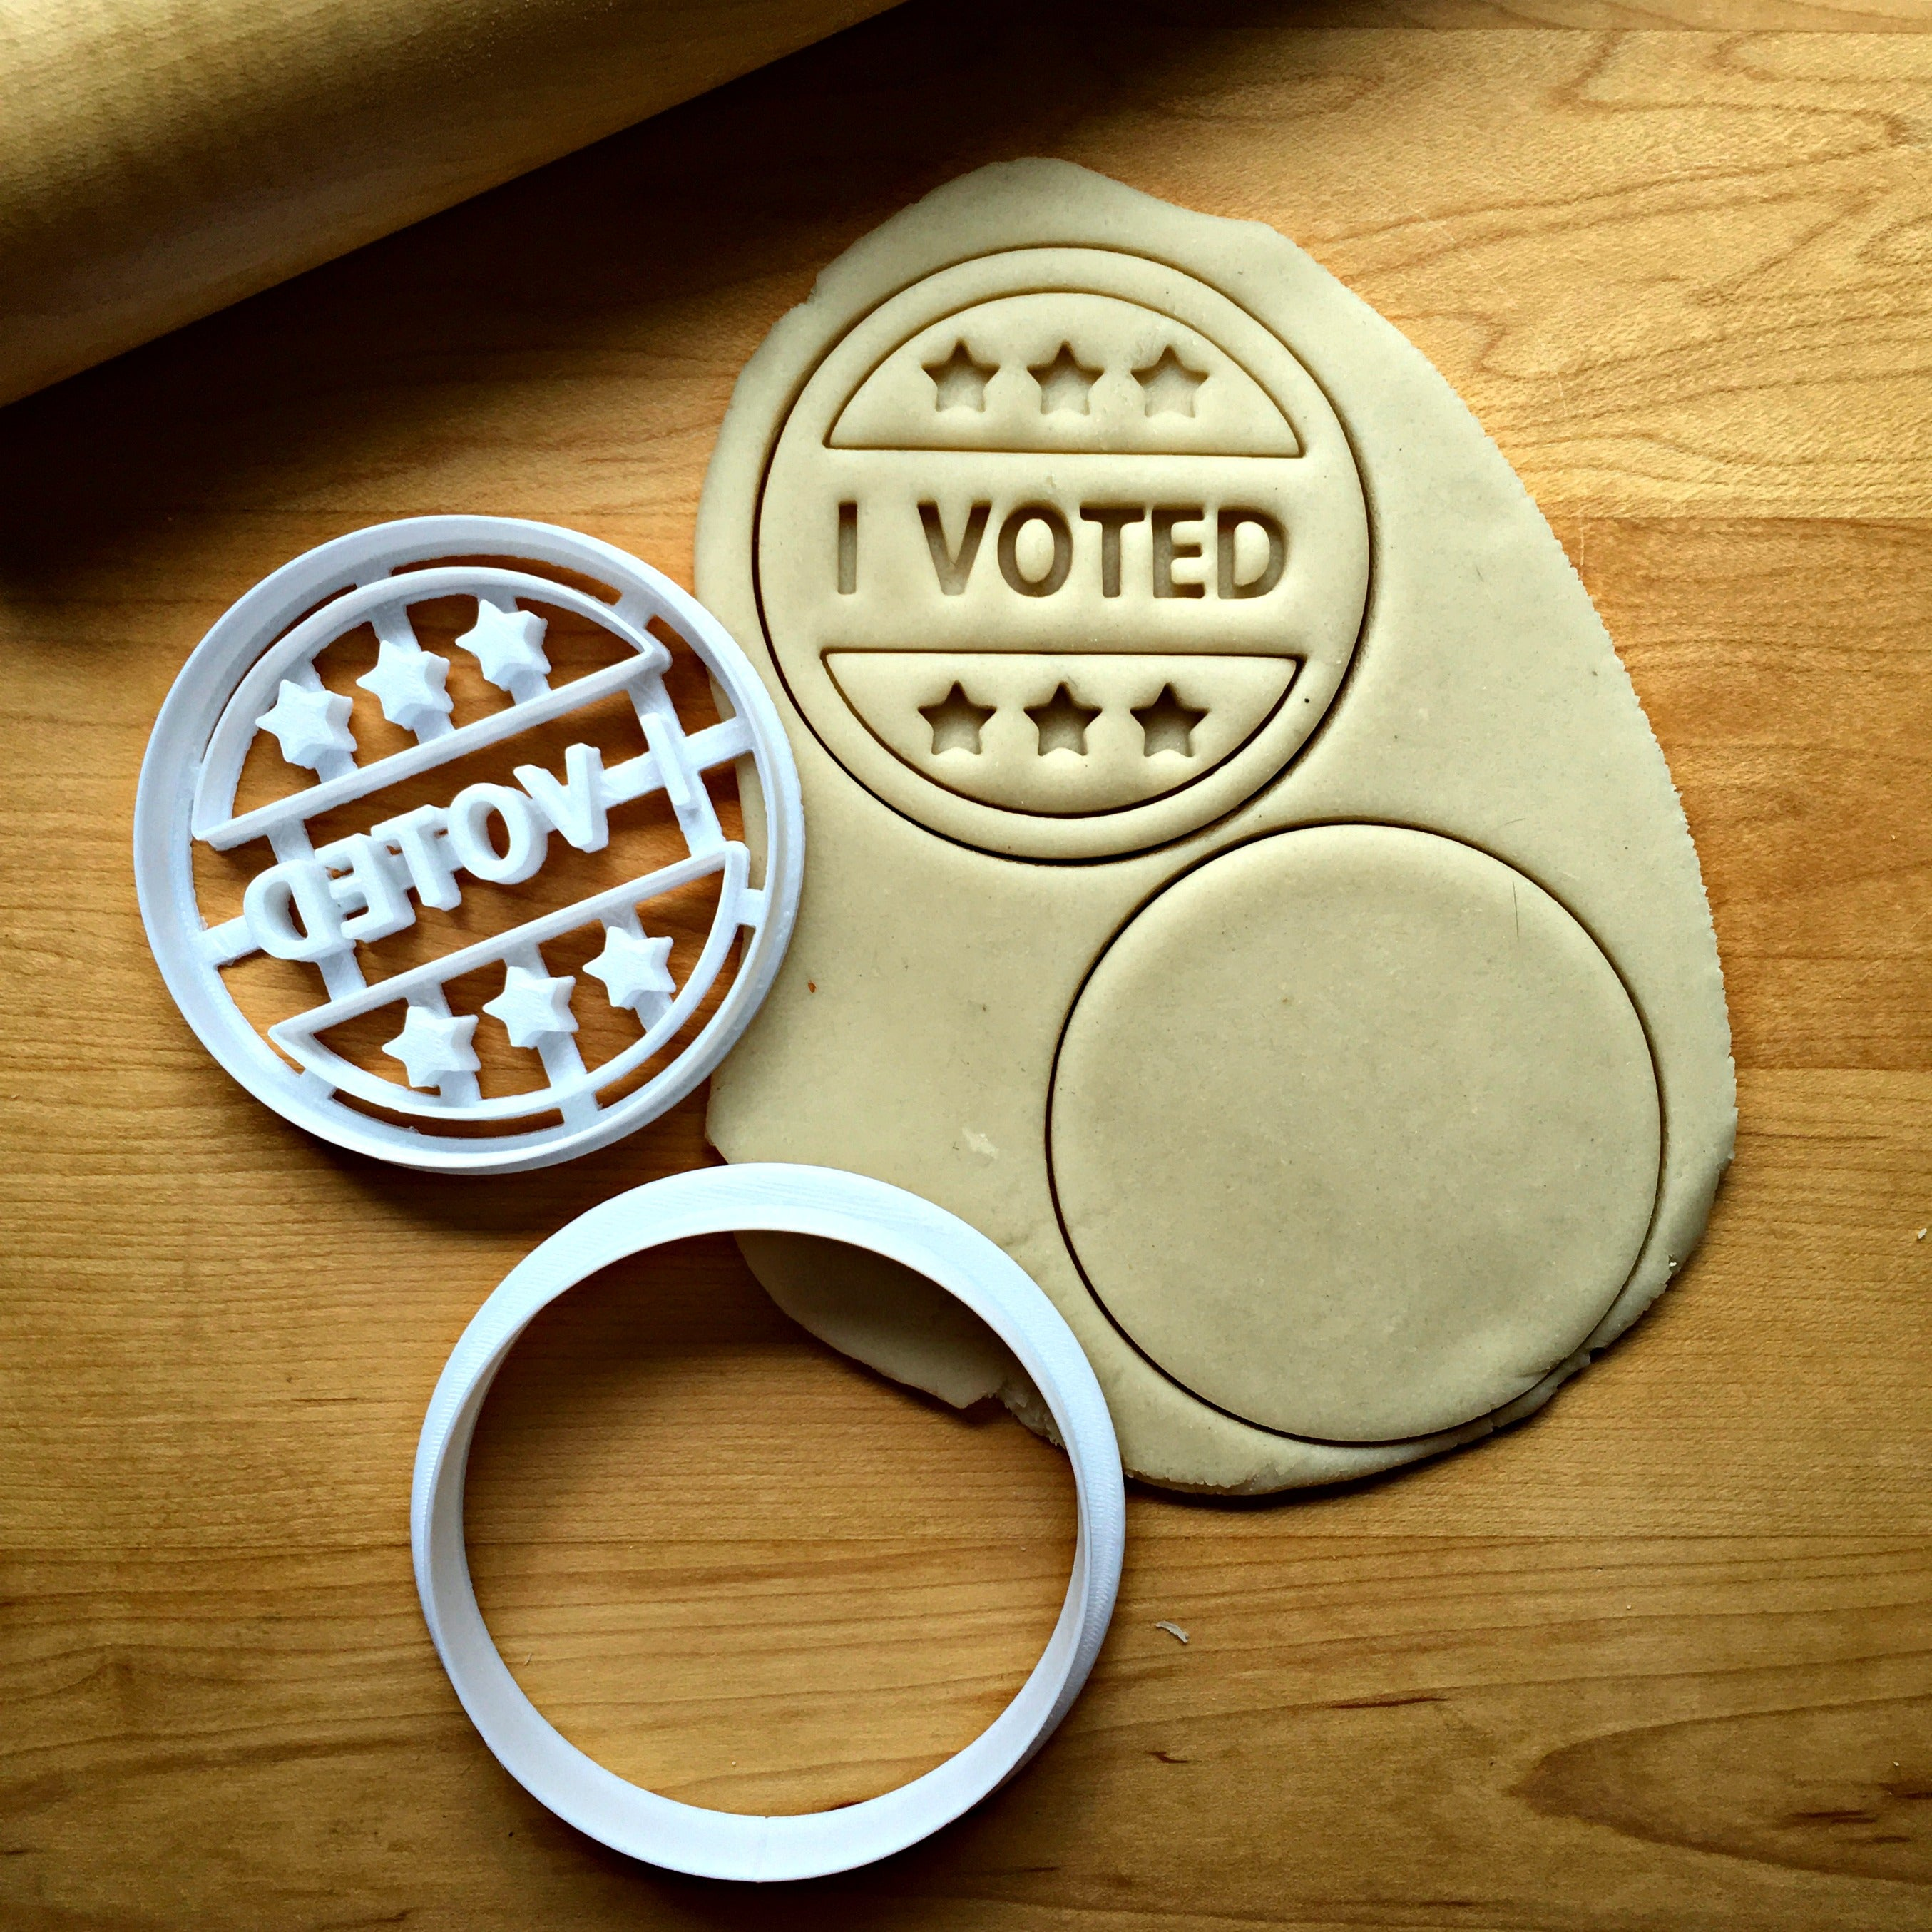 I Voted Cookie Cutter/Dishwasher Safe